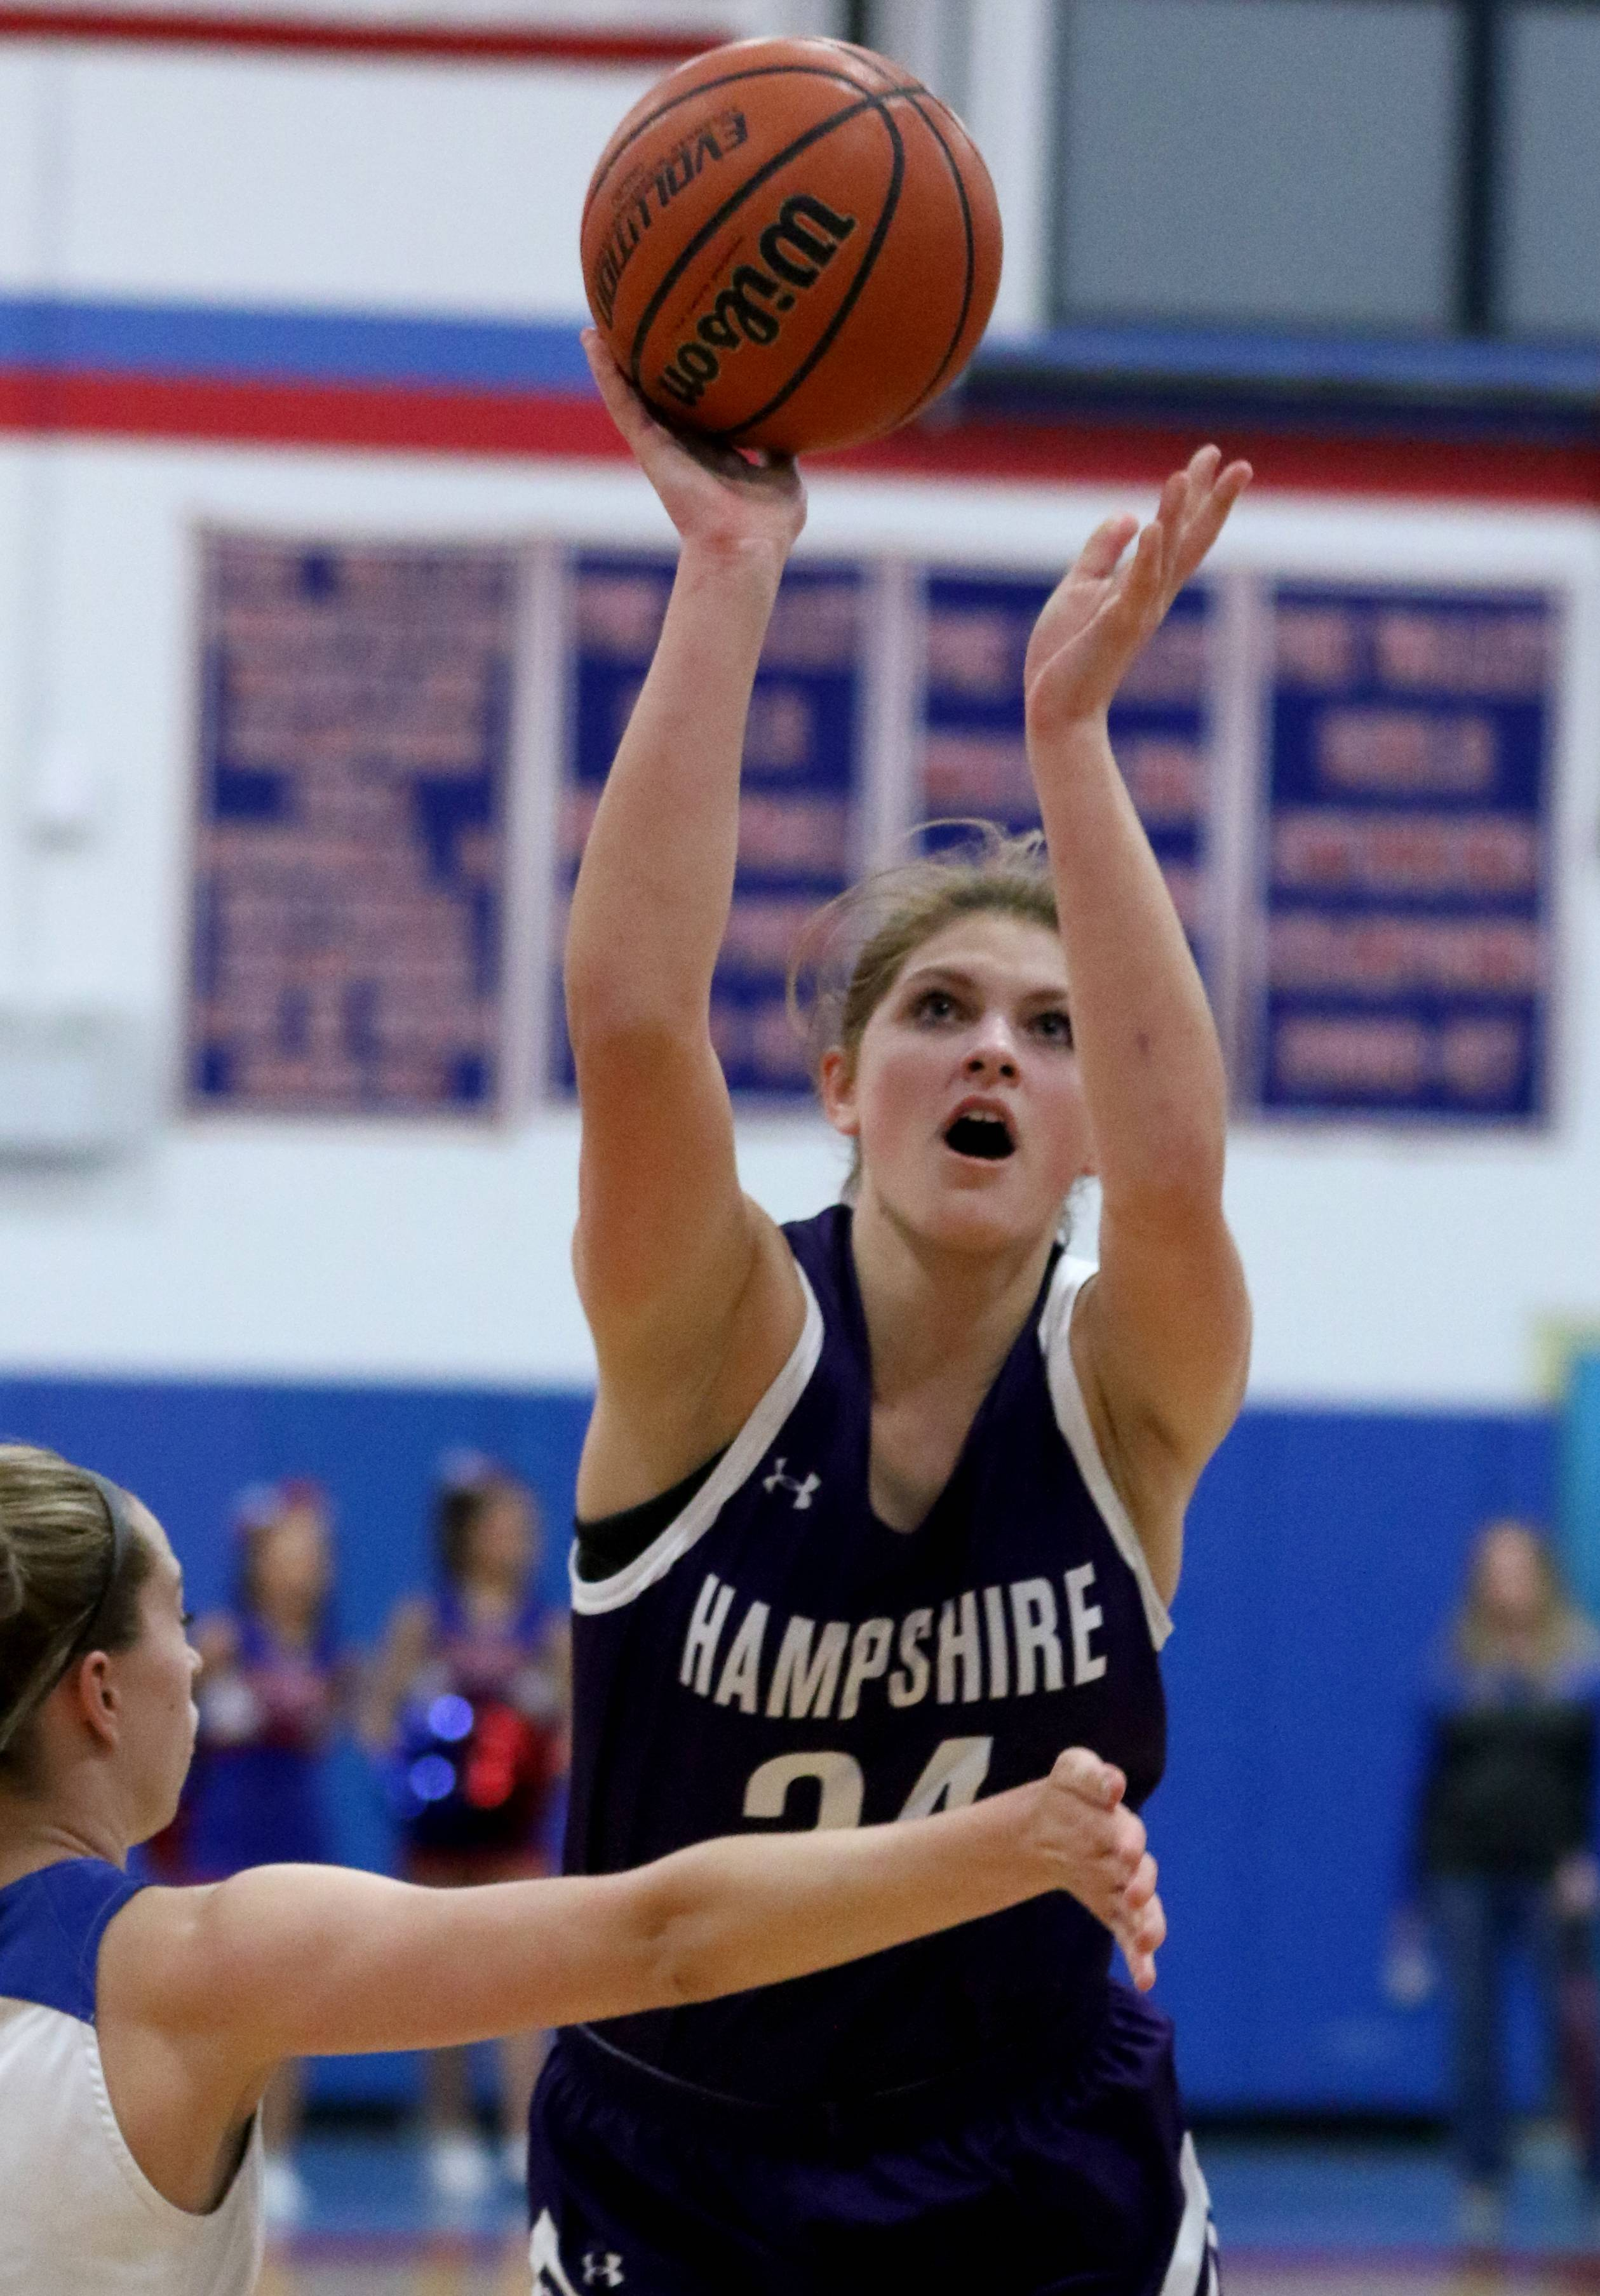 Hampshire's Kelby Bannerman takes a shot against Dundee-Crown during varsity girls basketball at Carpentersville Friday night.